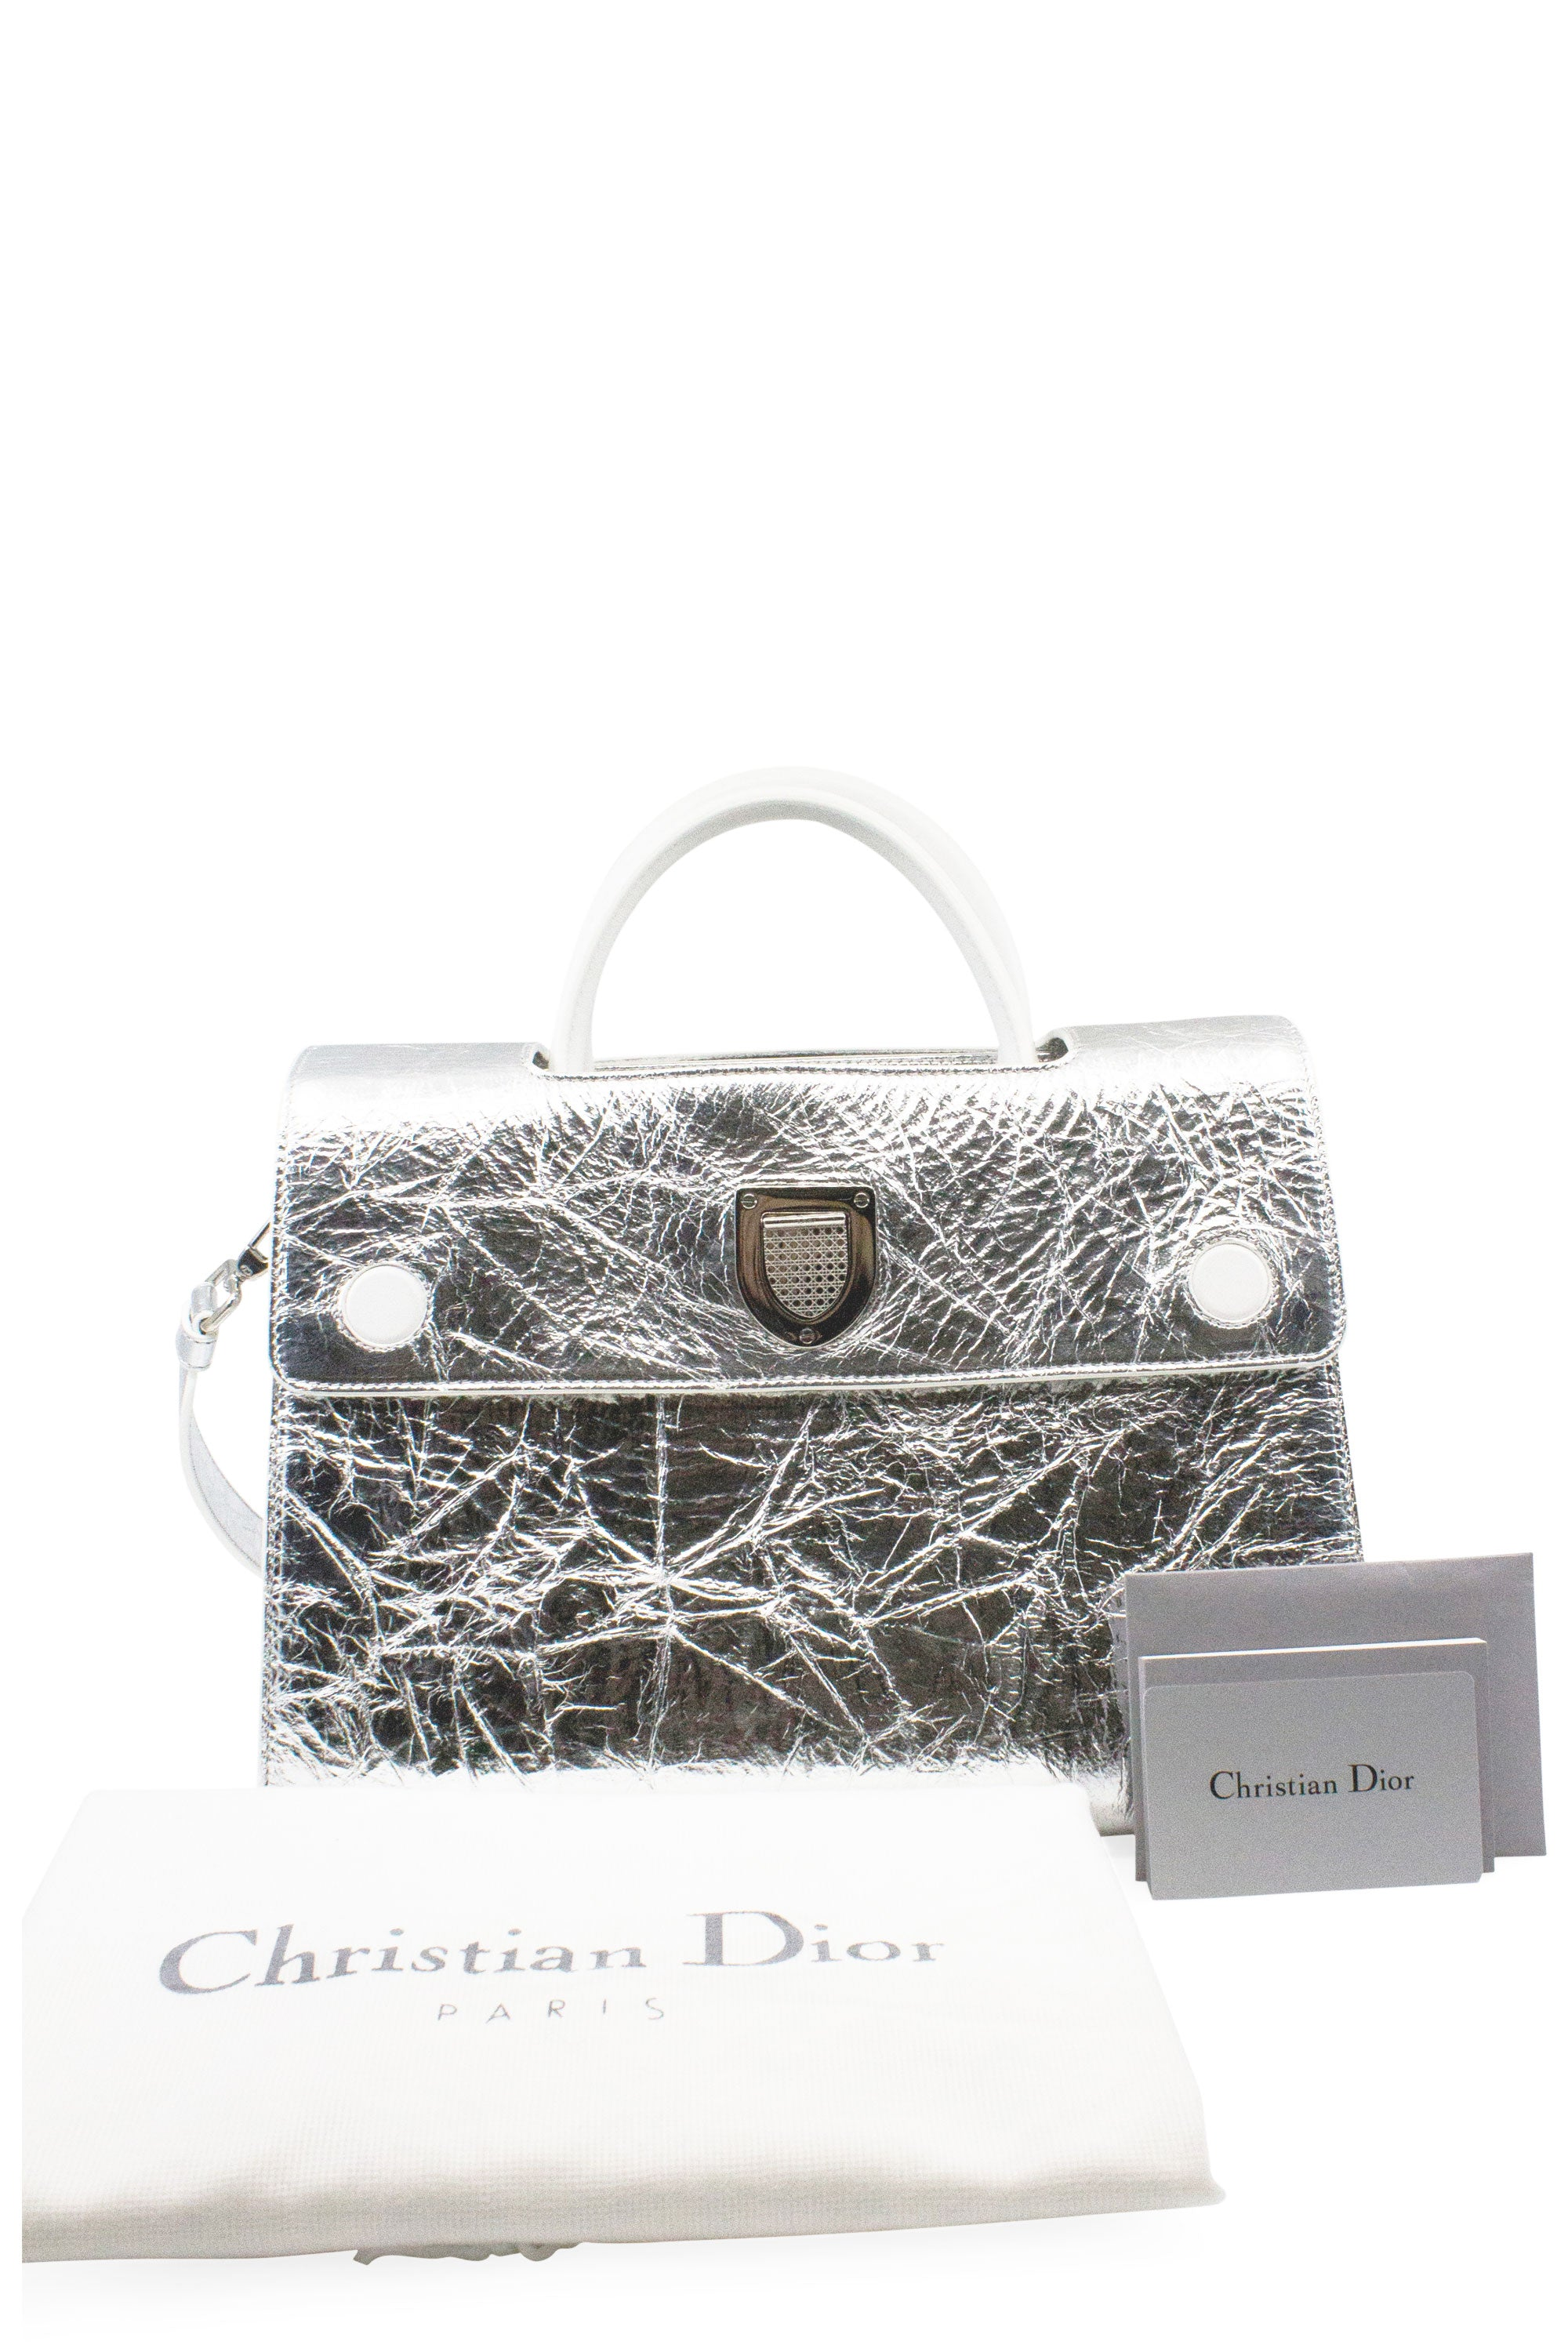 CHRISTIAN DIOR Diorever Metallic Bag